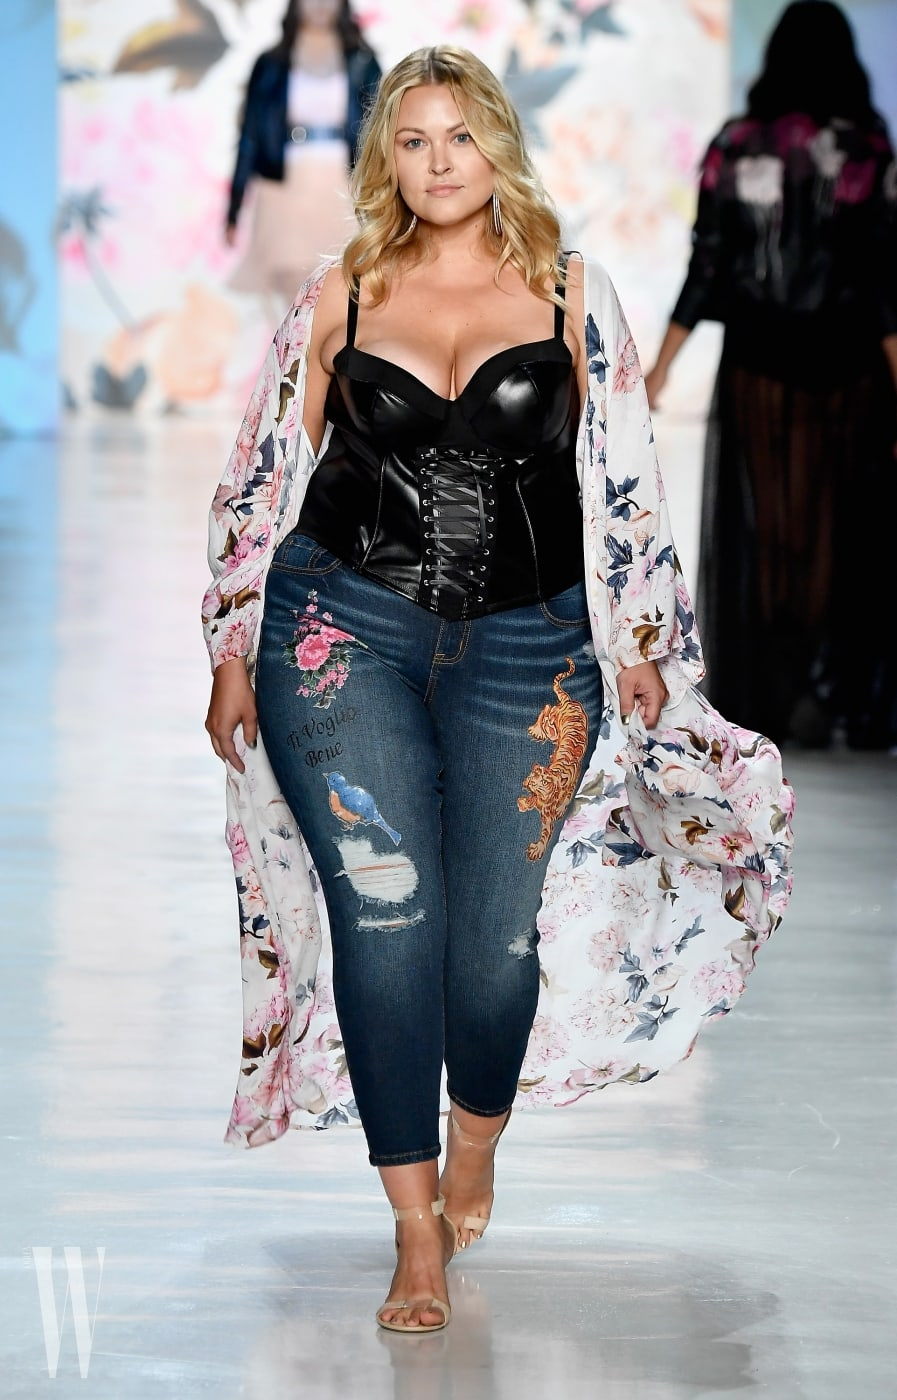 Torrid - Runway - September 2017 - New York Fashion Week: The Shows